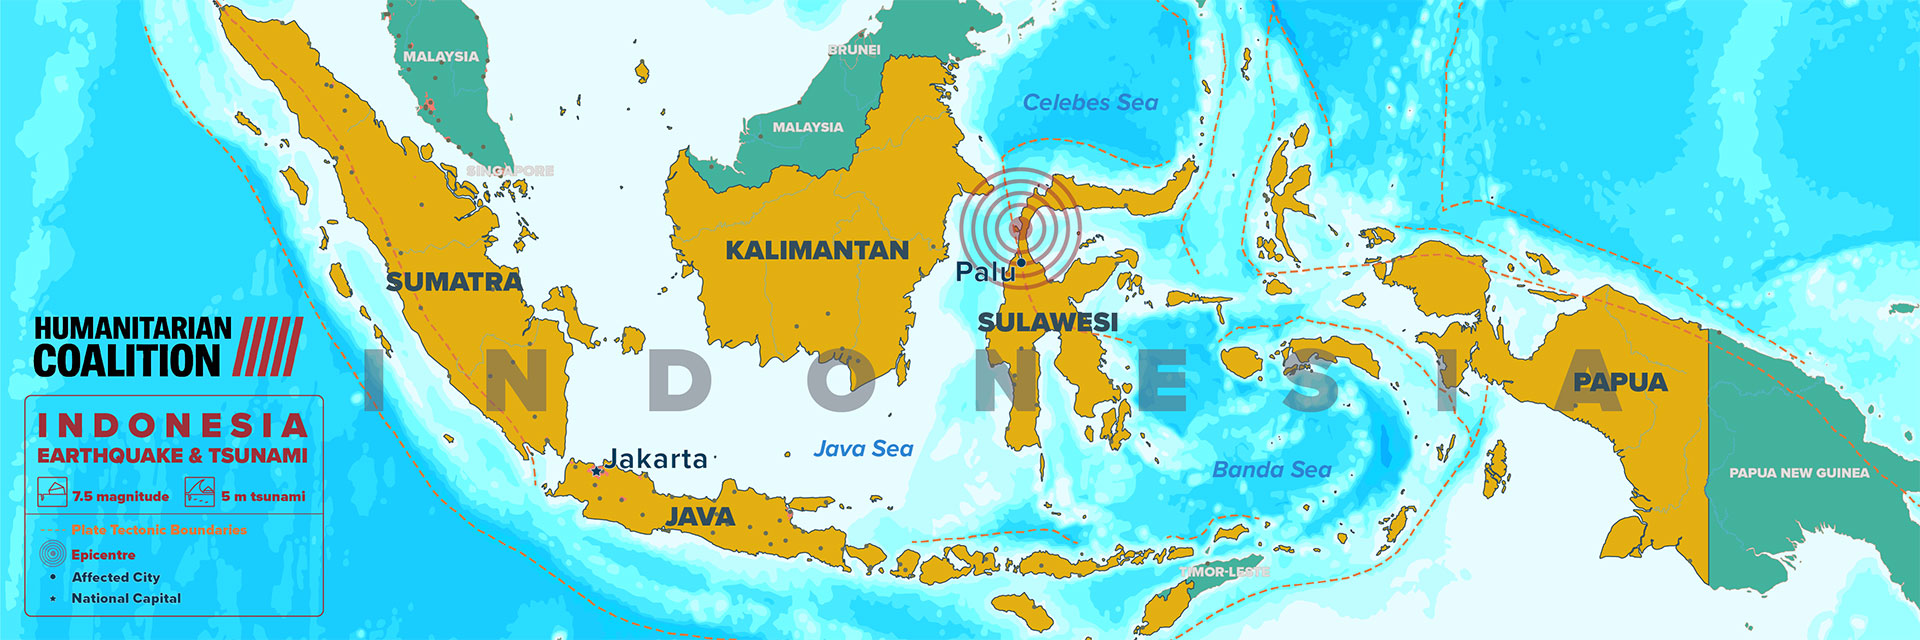 Indonesia Quake and Tsunami | Humanitarian Coalition